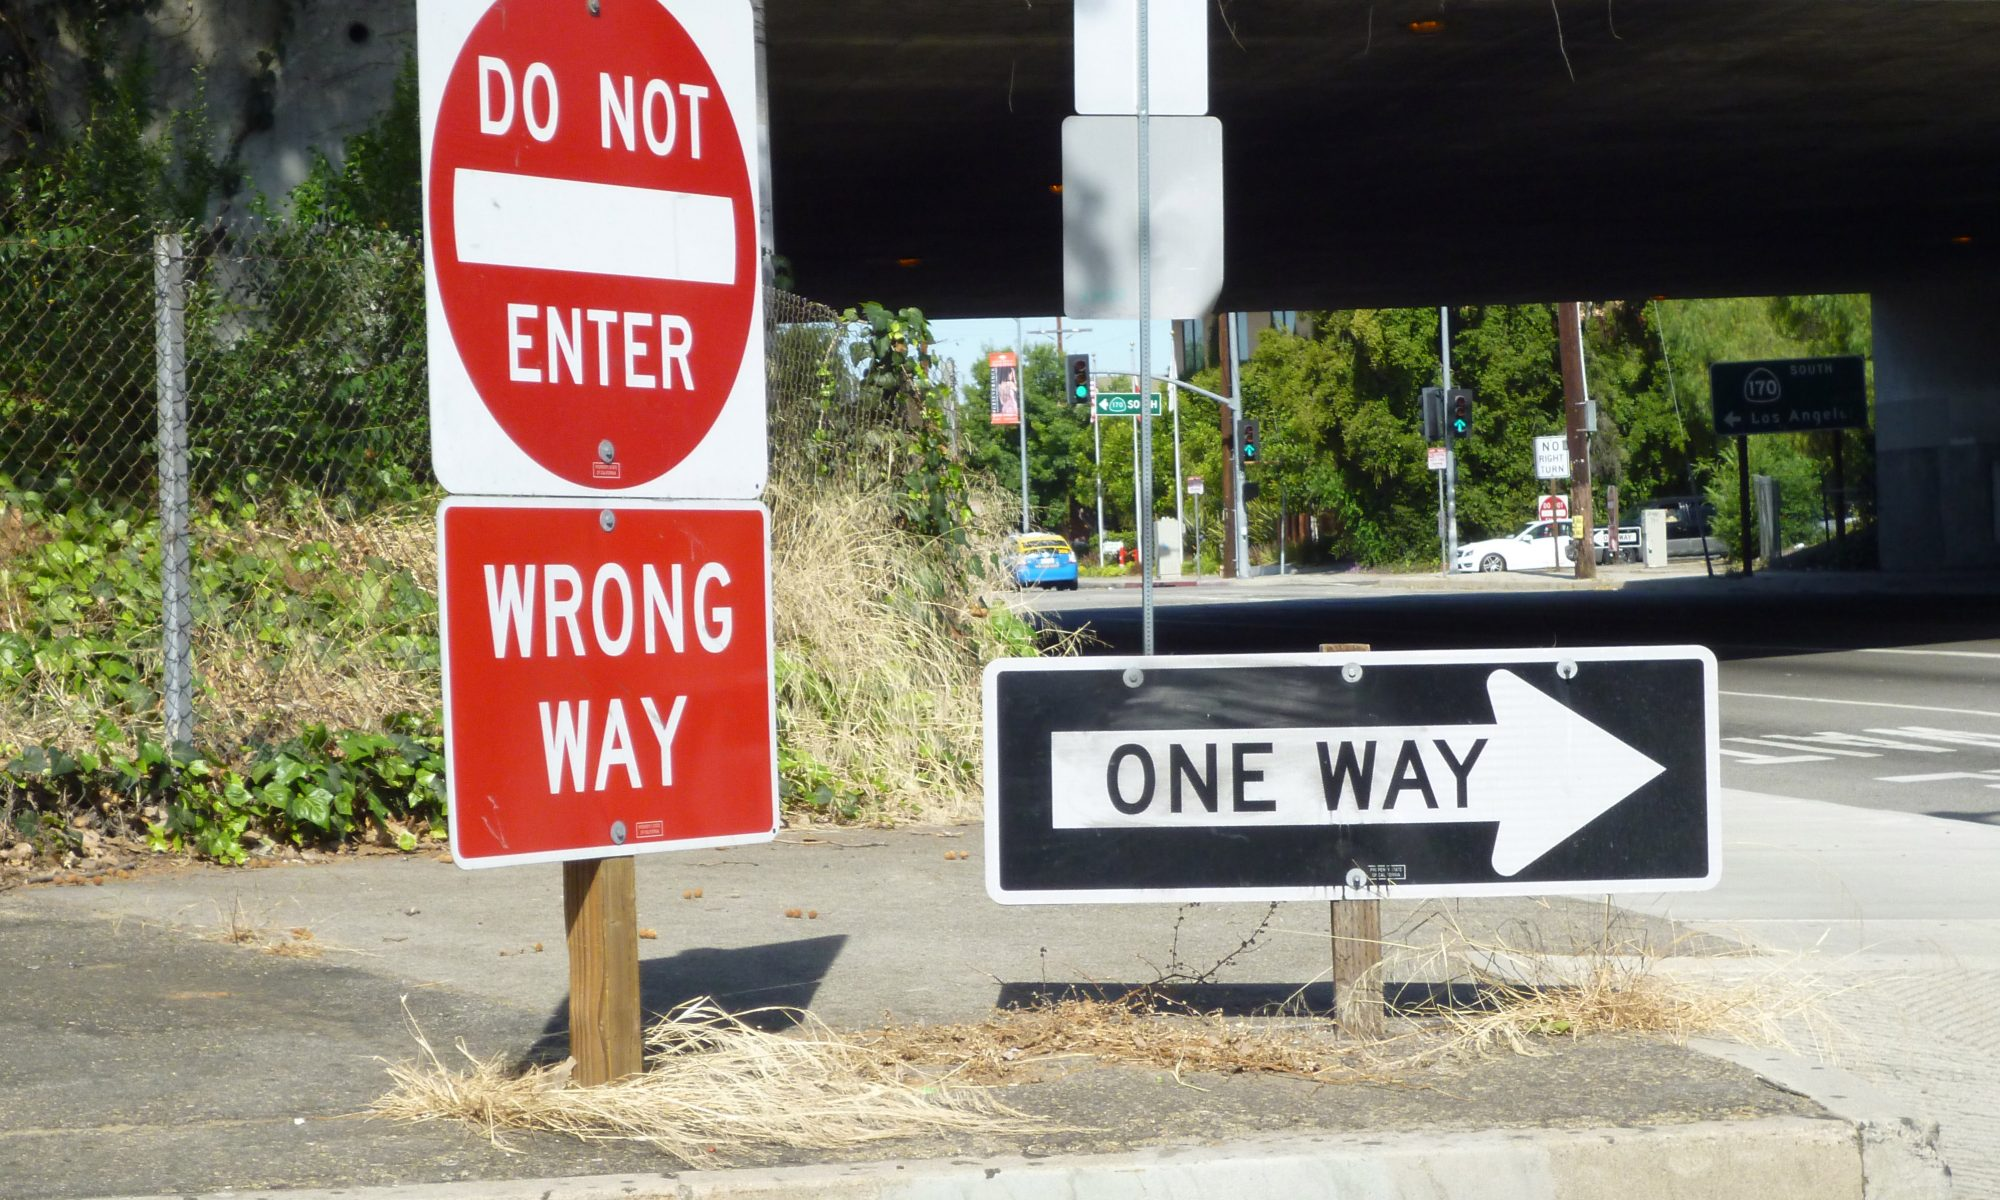 Signage: one way, wrong way, do not enter